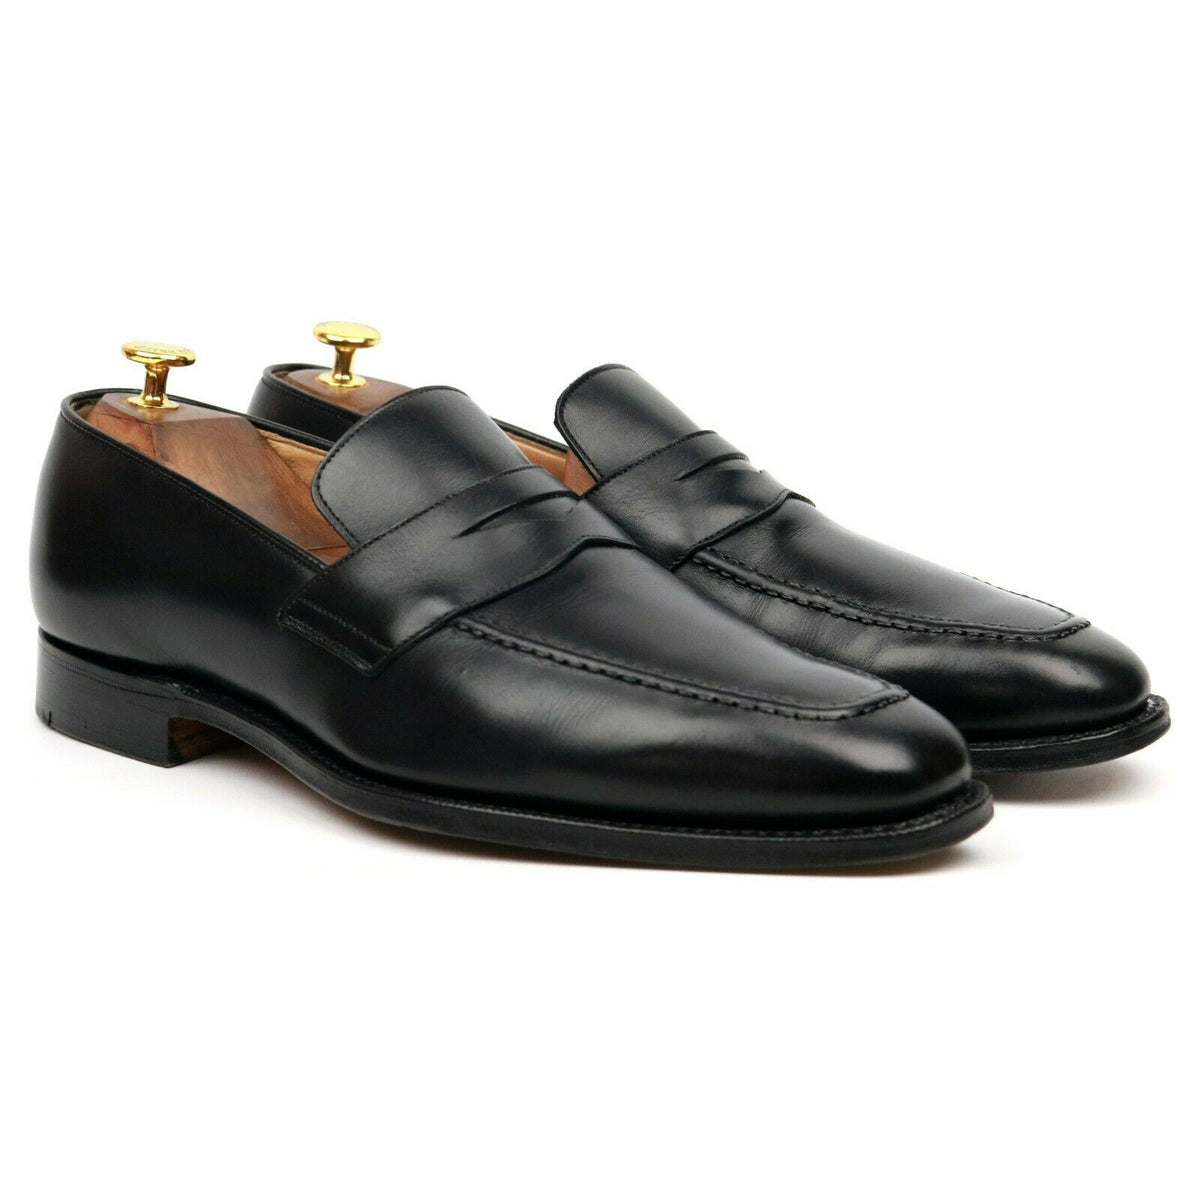 Church's 'Hertford' Black Leather Loafers UK 10 F